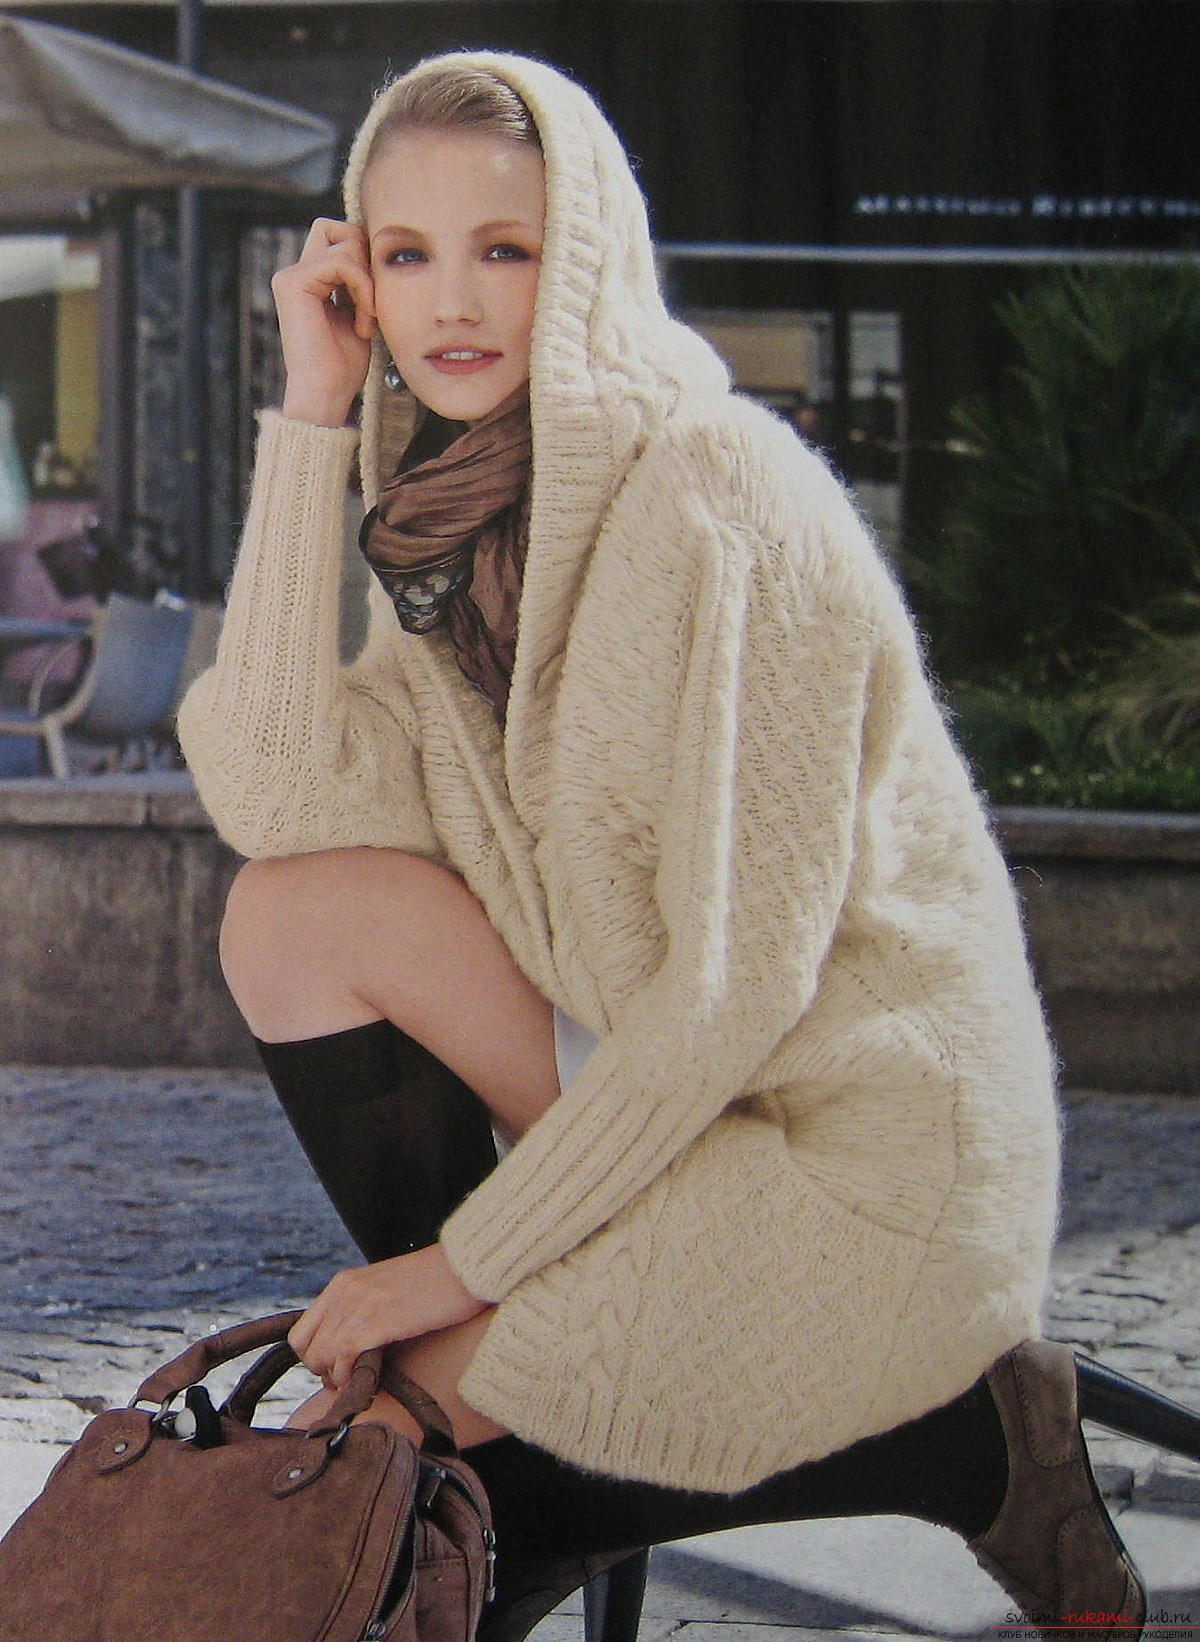 women's coats knitted with knitting needles. Picture №3